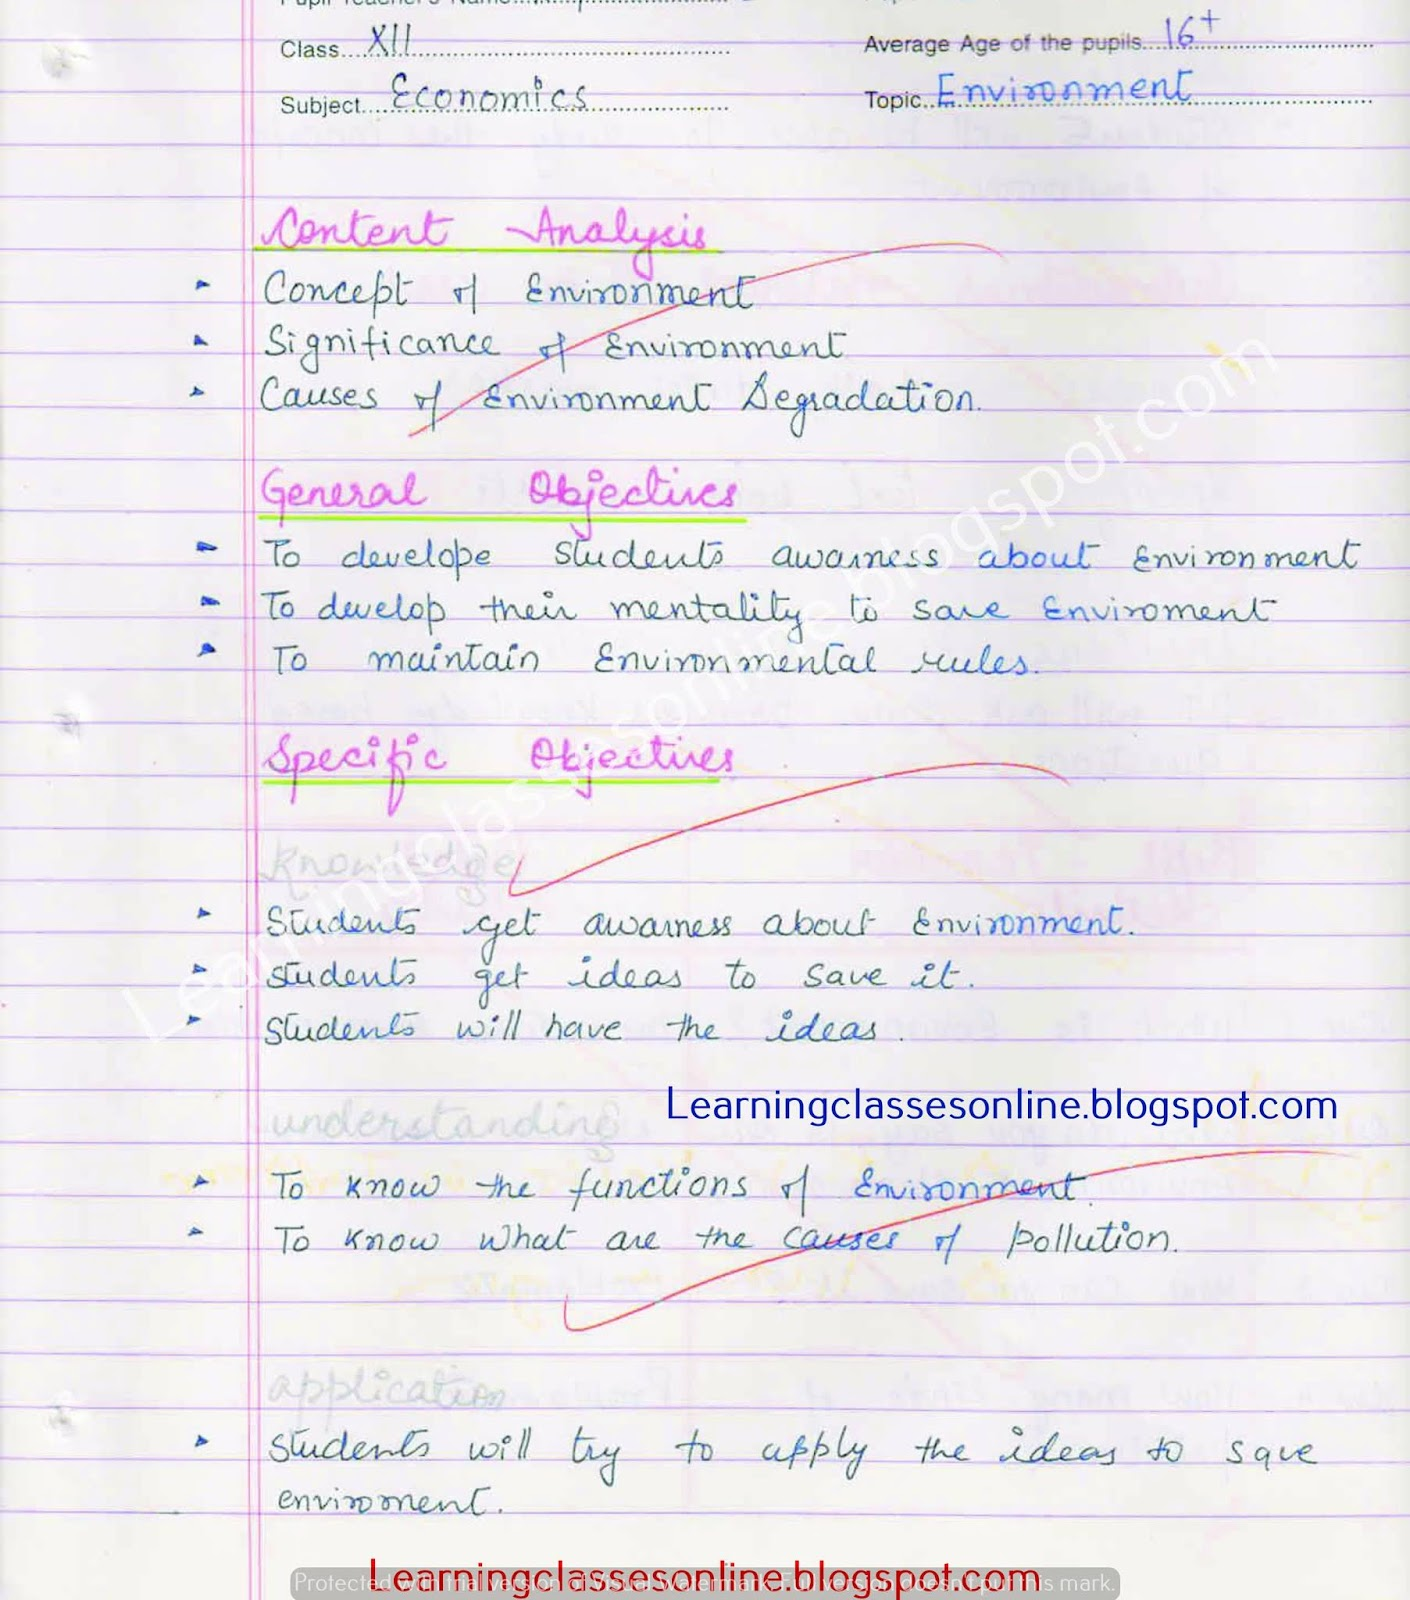 BEd lesson plan of economics on Environment